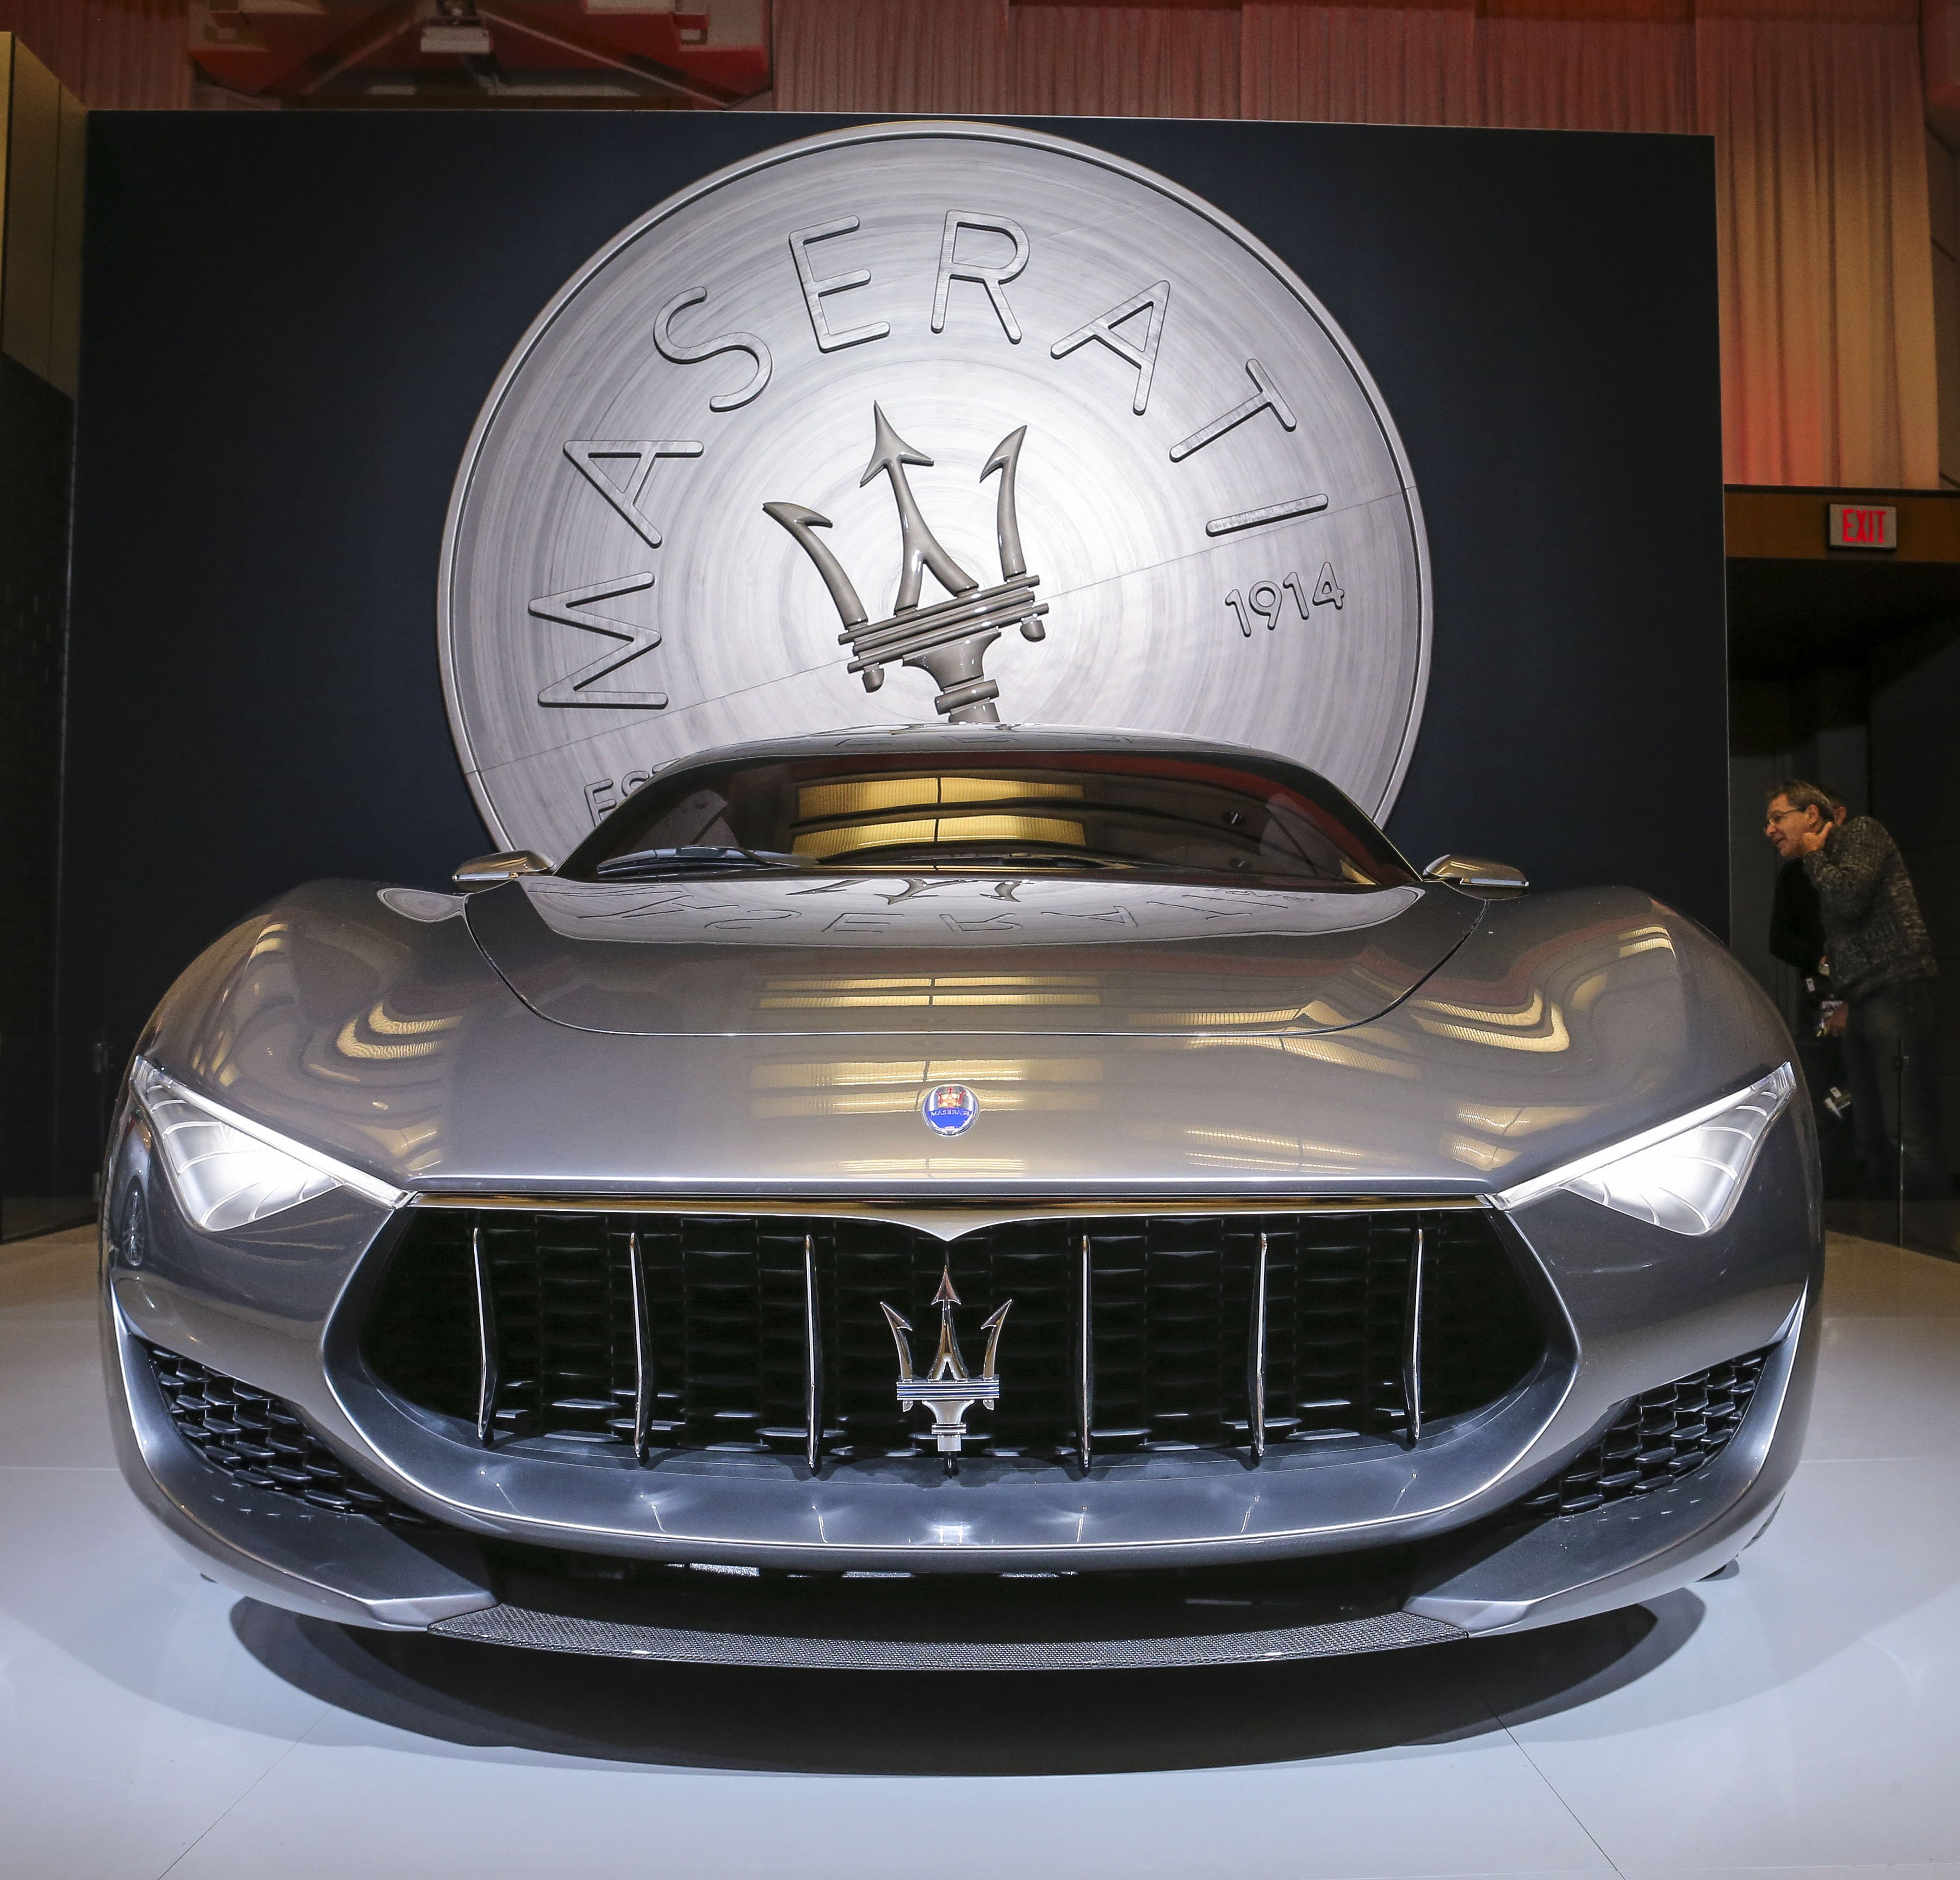 The Maserati Alfieri Concept At The Canadian International AutoShow